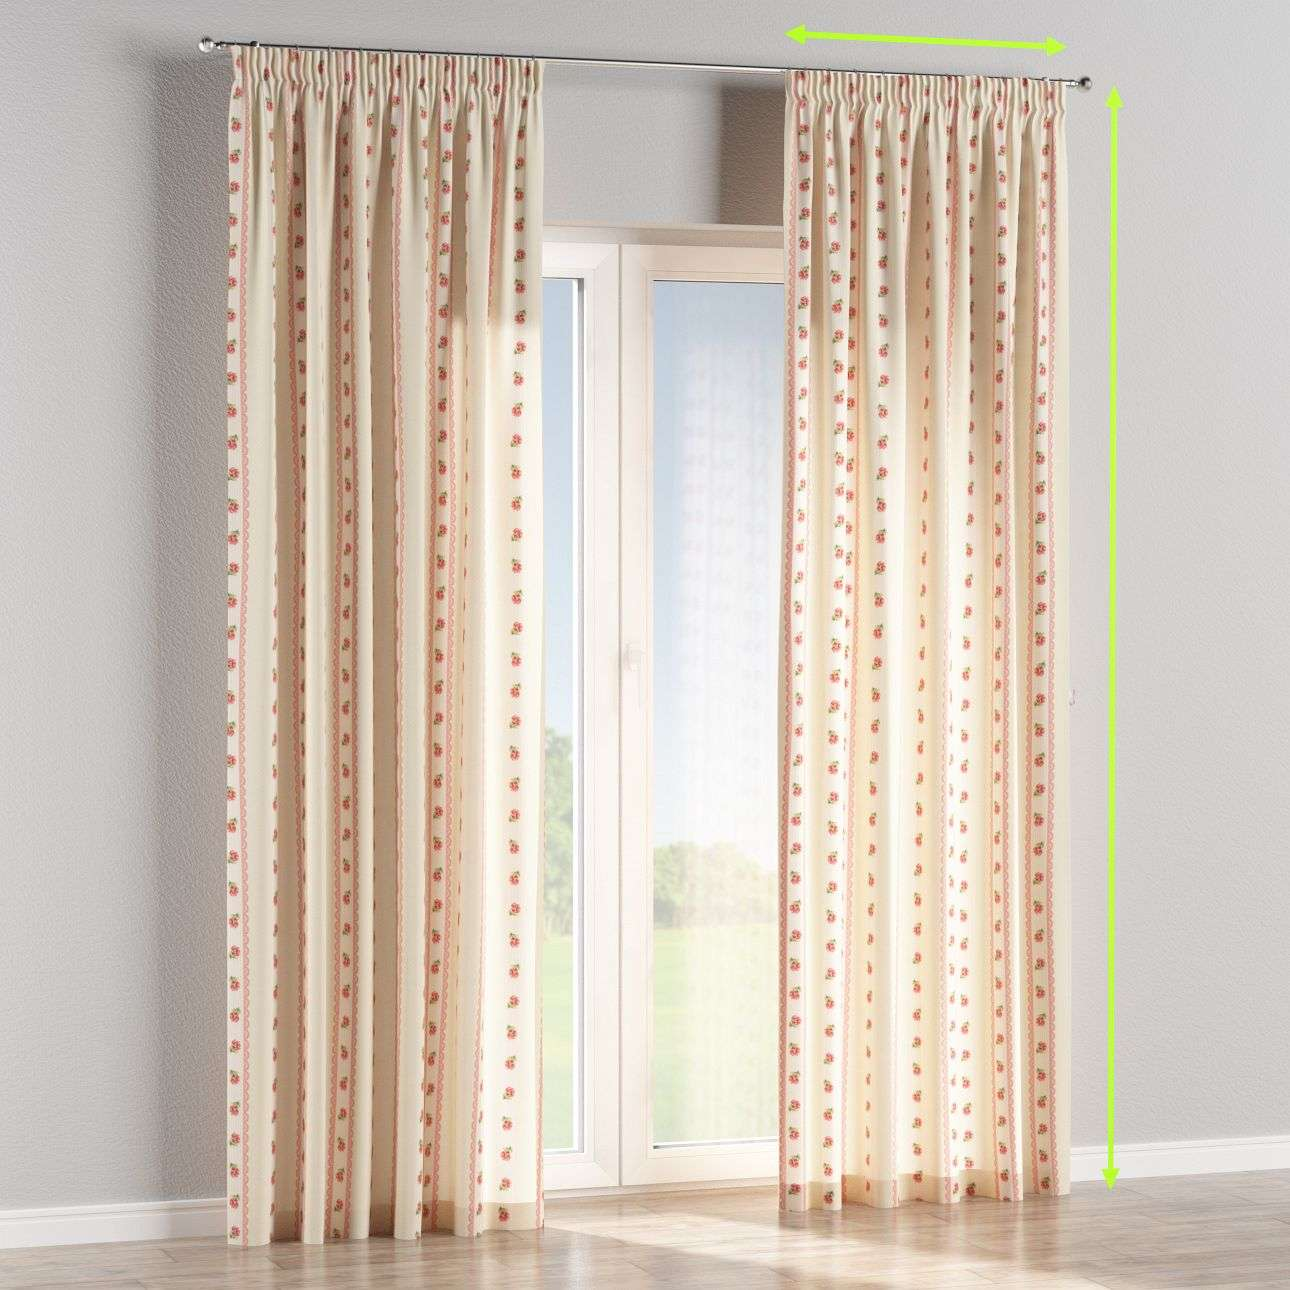 Pencil pleat lined curtains in collection Ashley, fabric: 137-48